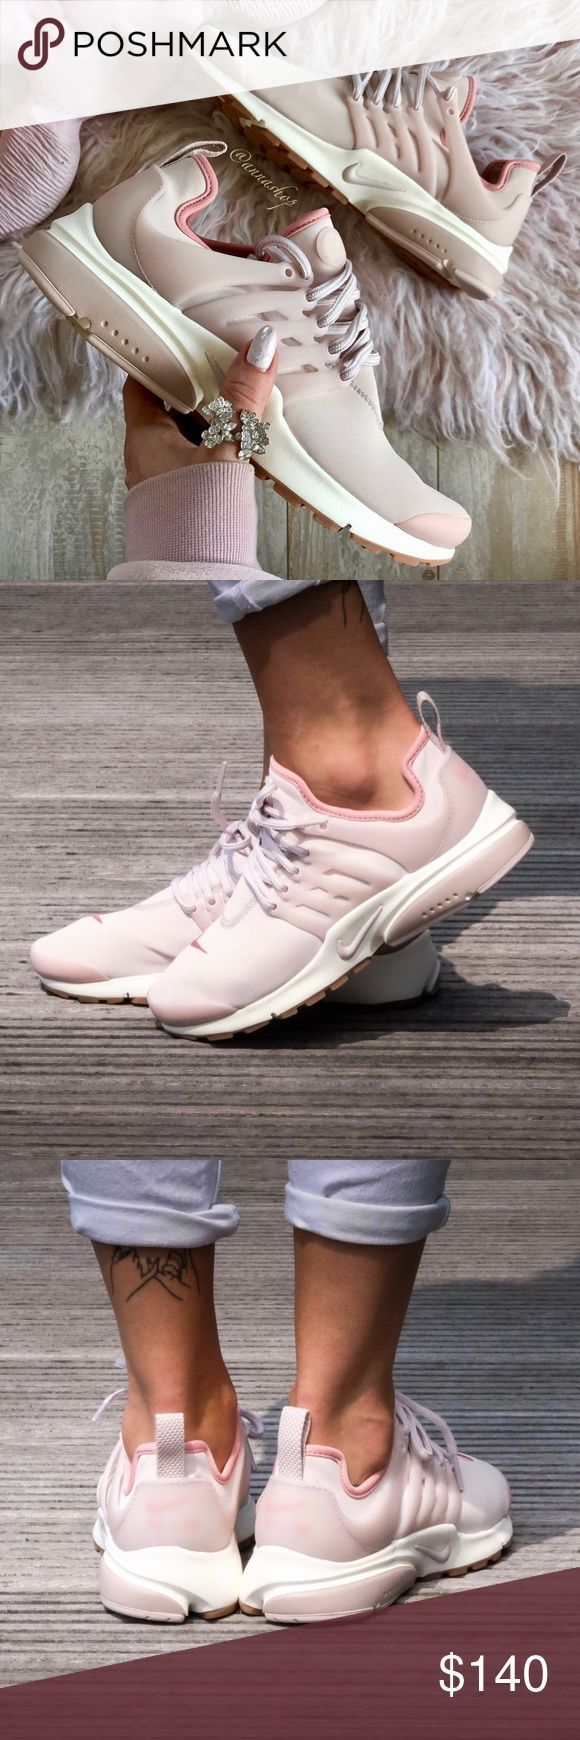 NWT Nike Air Presto Premium Pink Brand new with box no lid, price is firm!!Want …